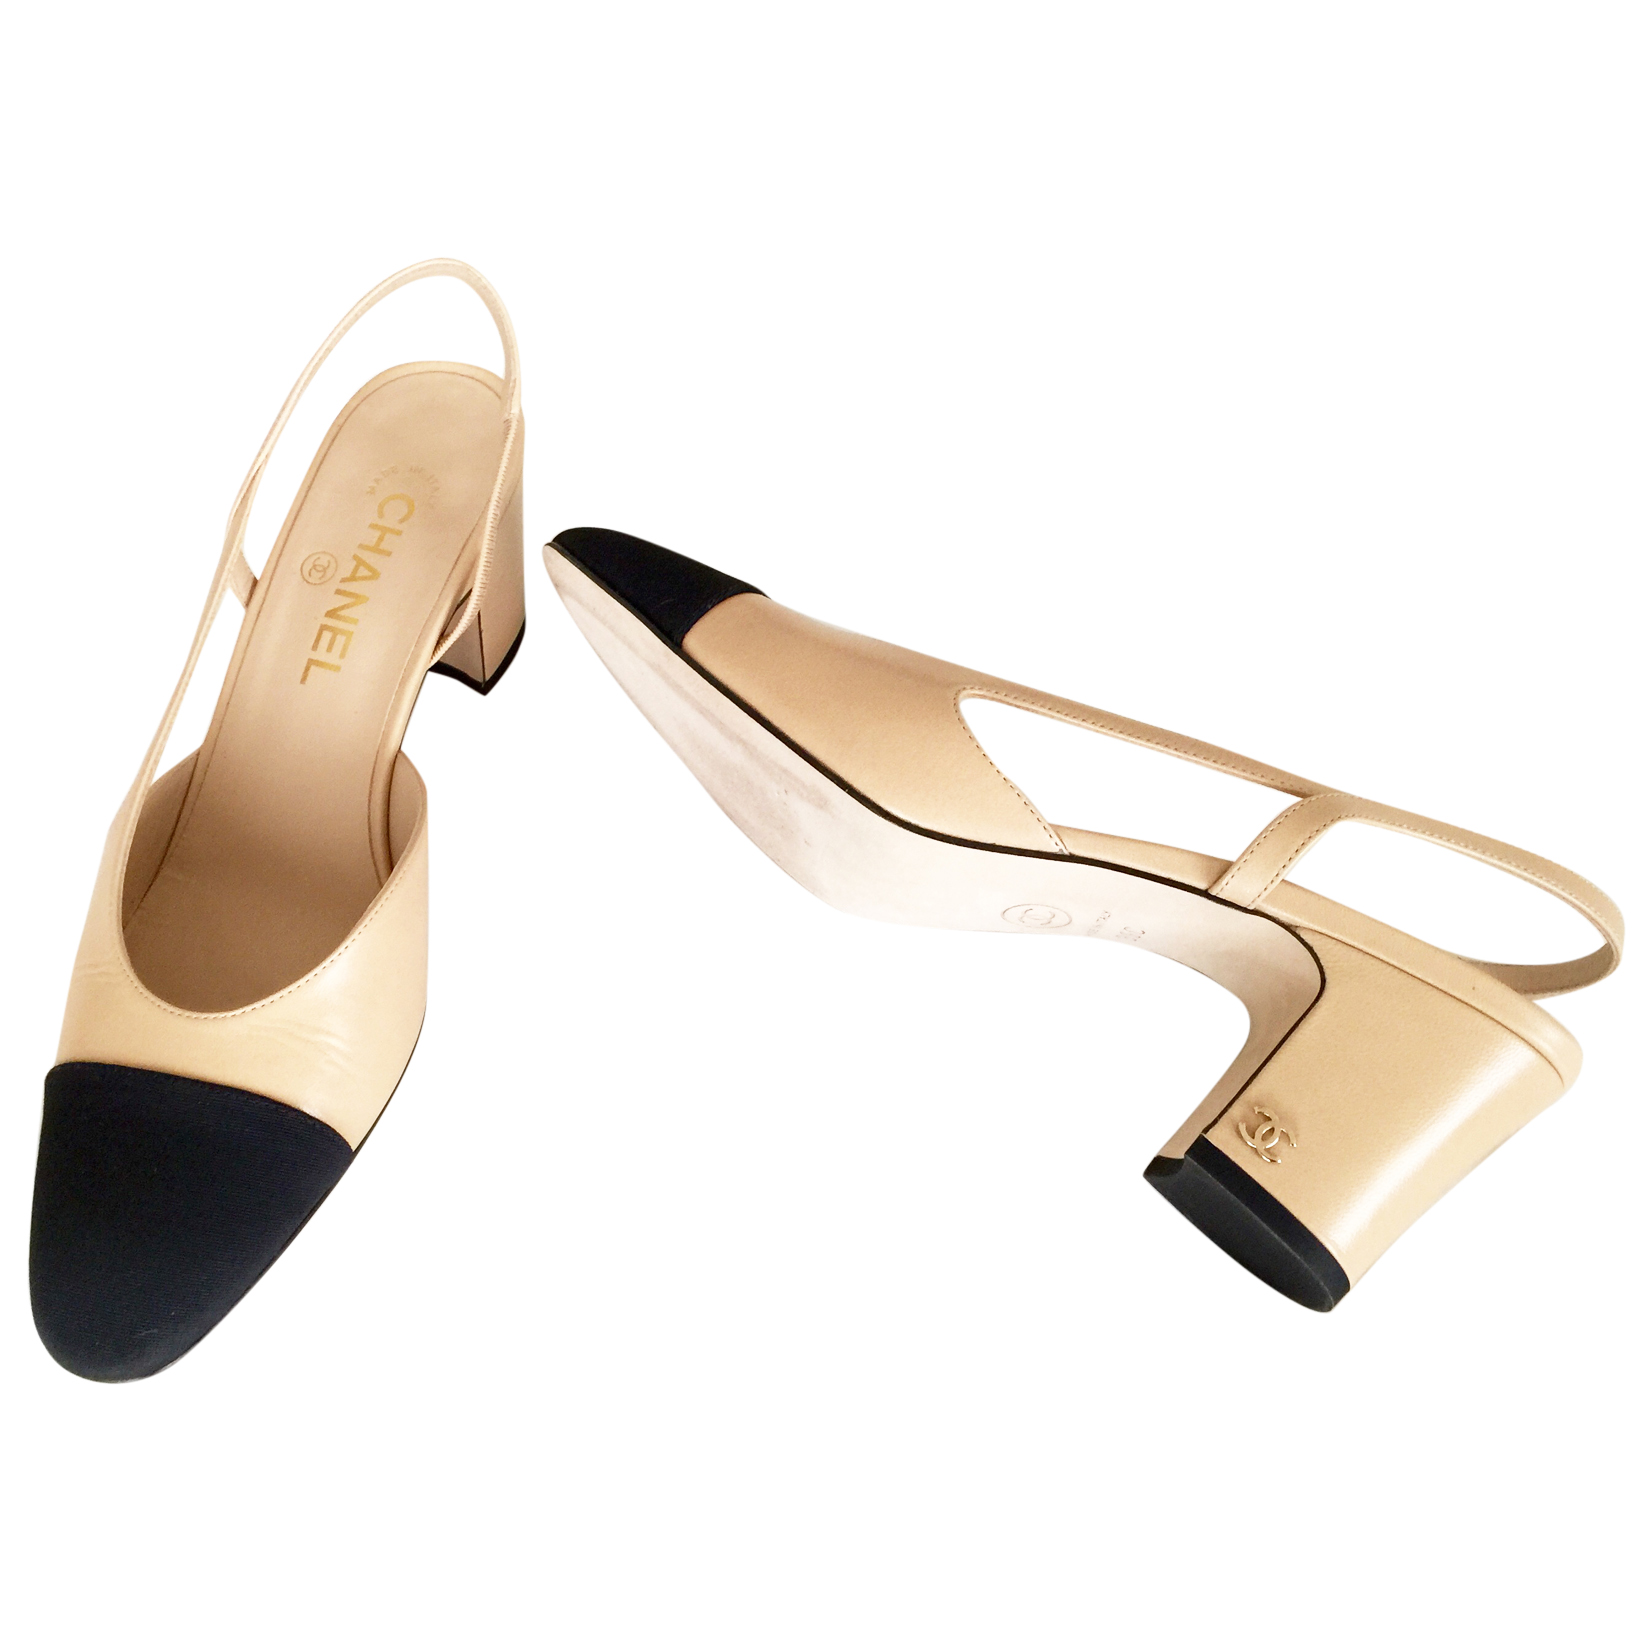 Chanel Slingback Shoes Beige And Black